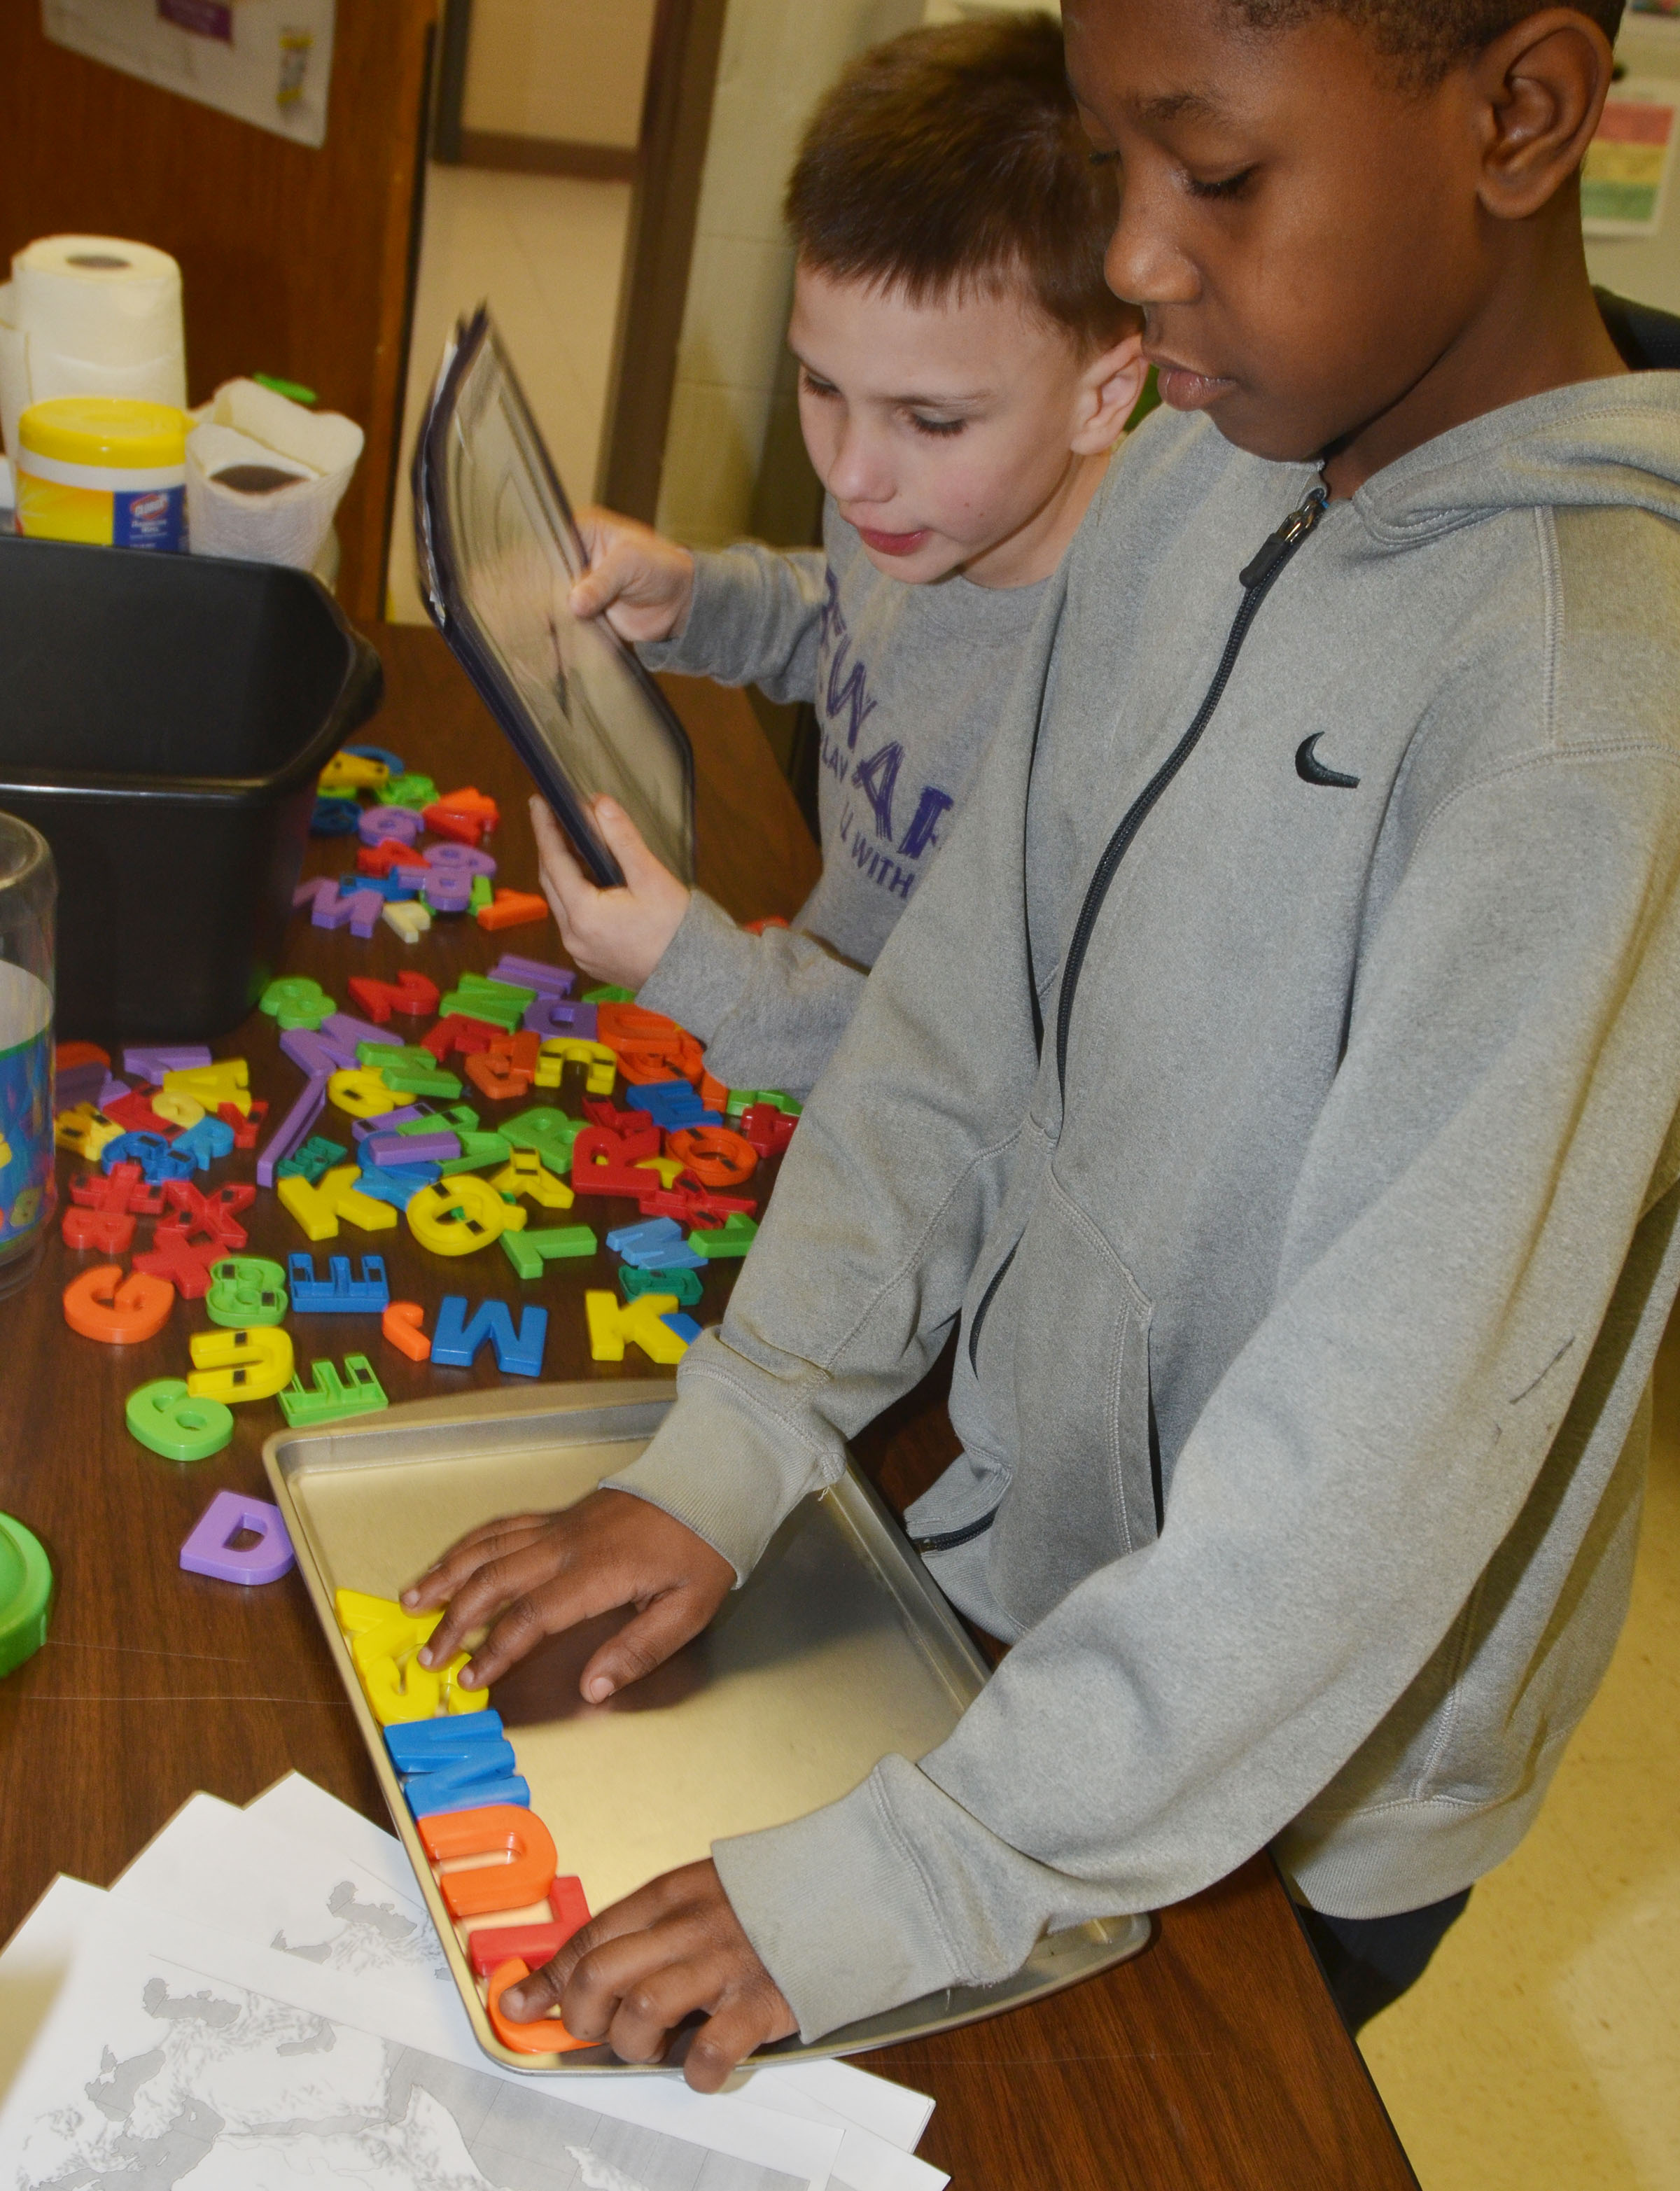 CES third-graders Jayden Harris, at left, and Jaron Johnson practice spelling sight words with magnetic letters and a cookie sheet.